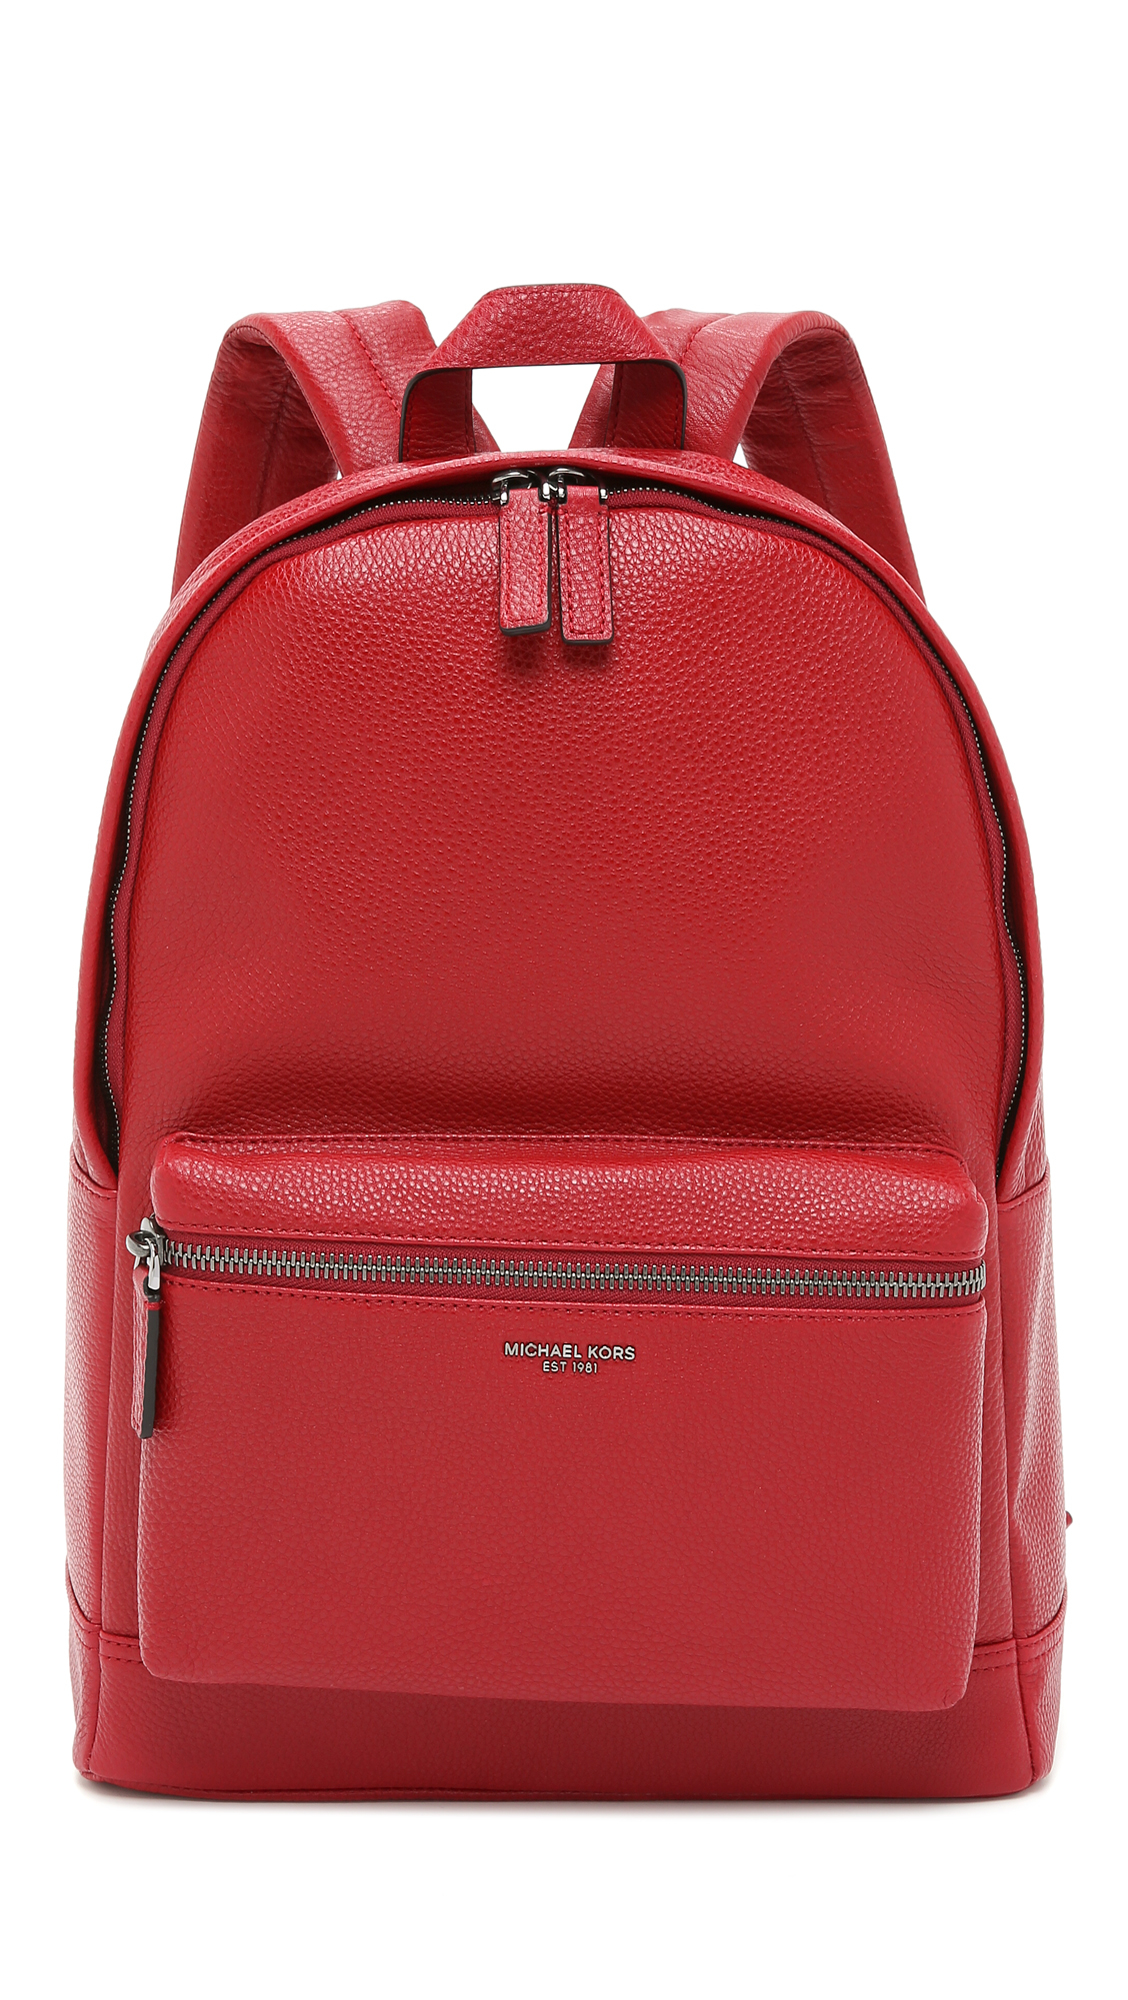 9f952f93261d Michael Kors Bryant Pebbled Leather Backpack in Red for Men - Lyst